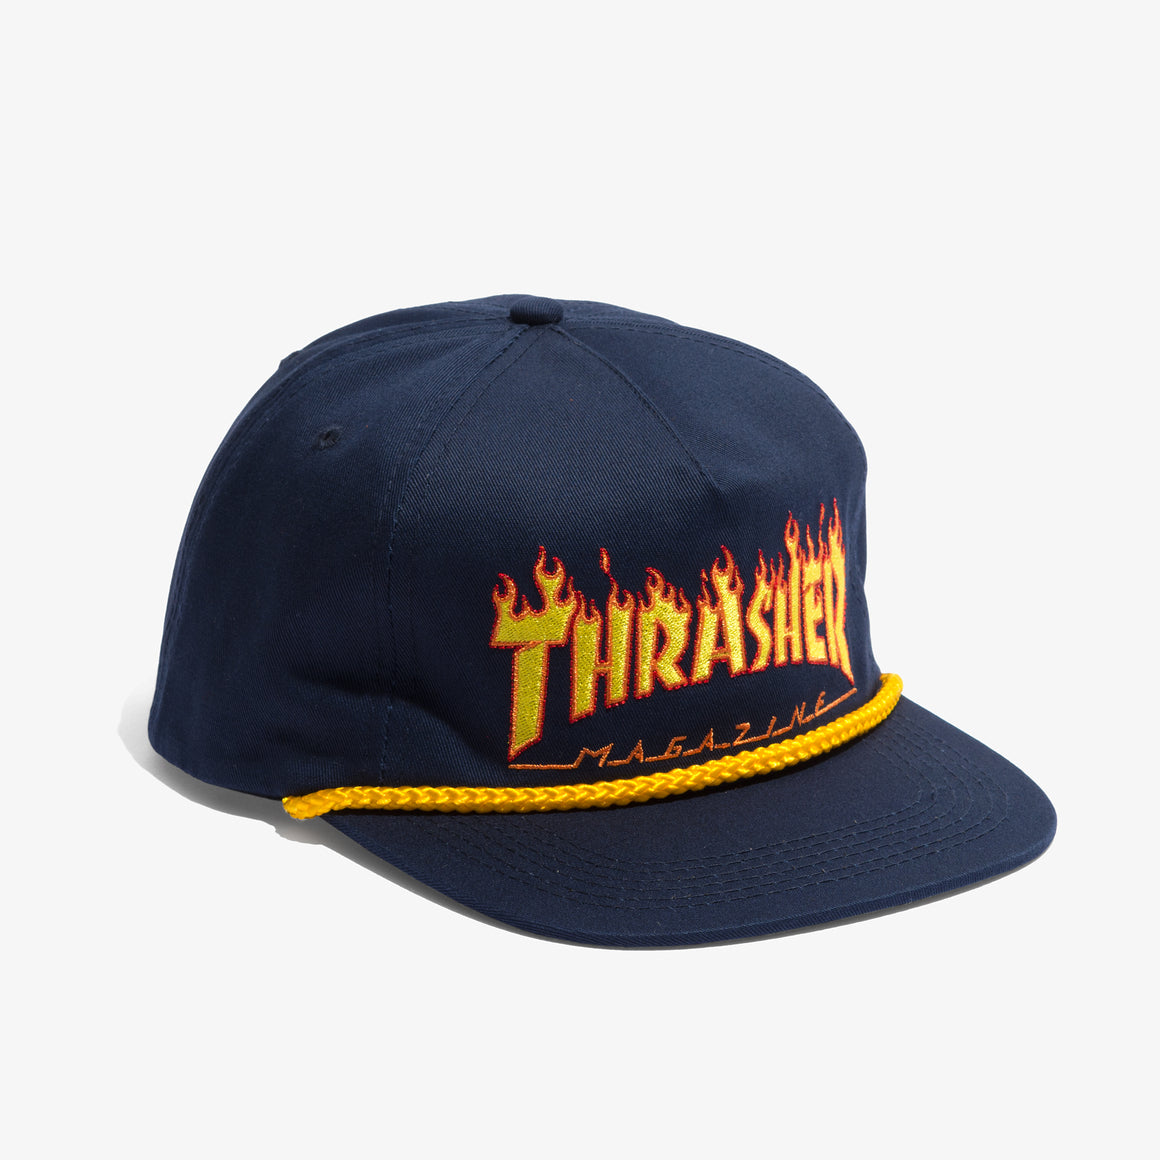 THRASHER FLAME LOGO ROPE HAT (NAVY)